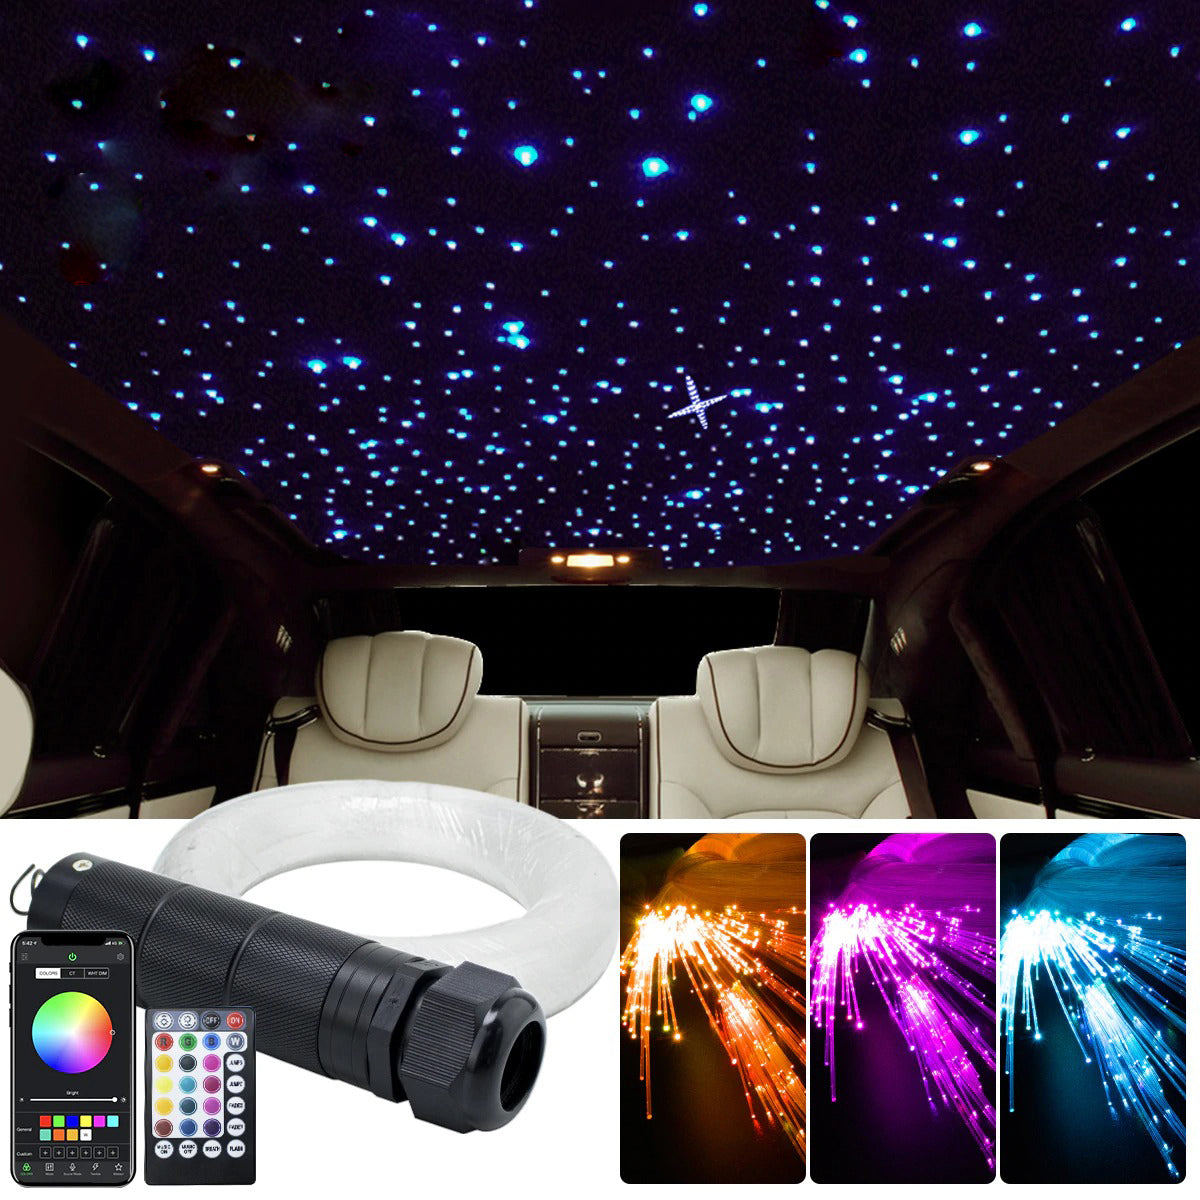 Ambient Star Lighting Kit